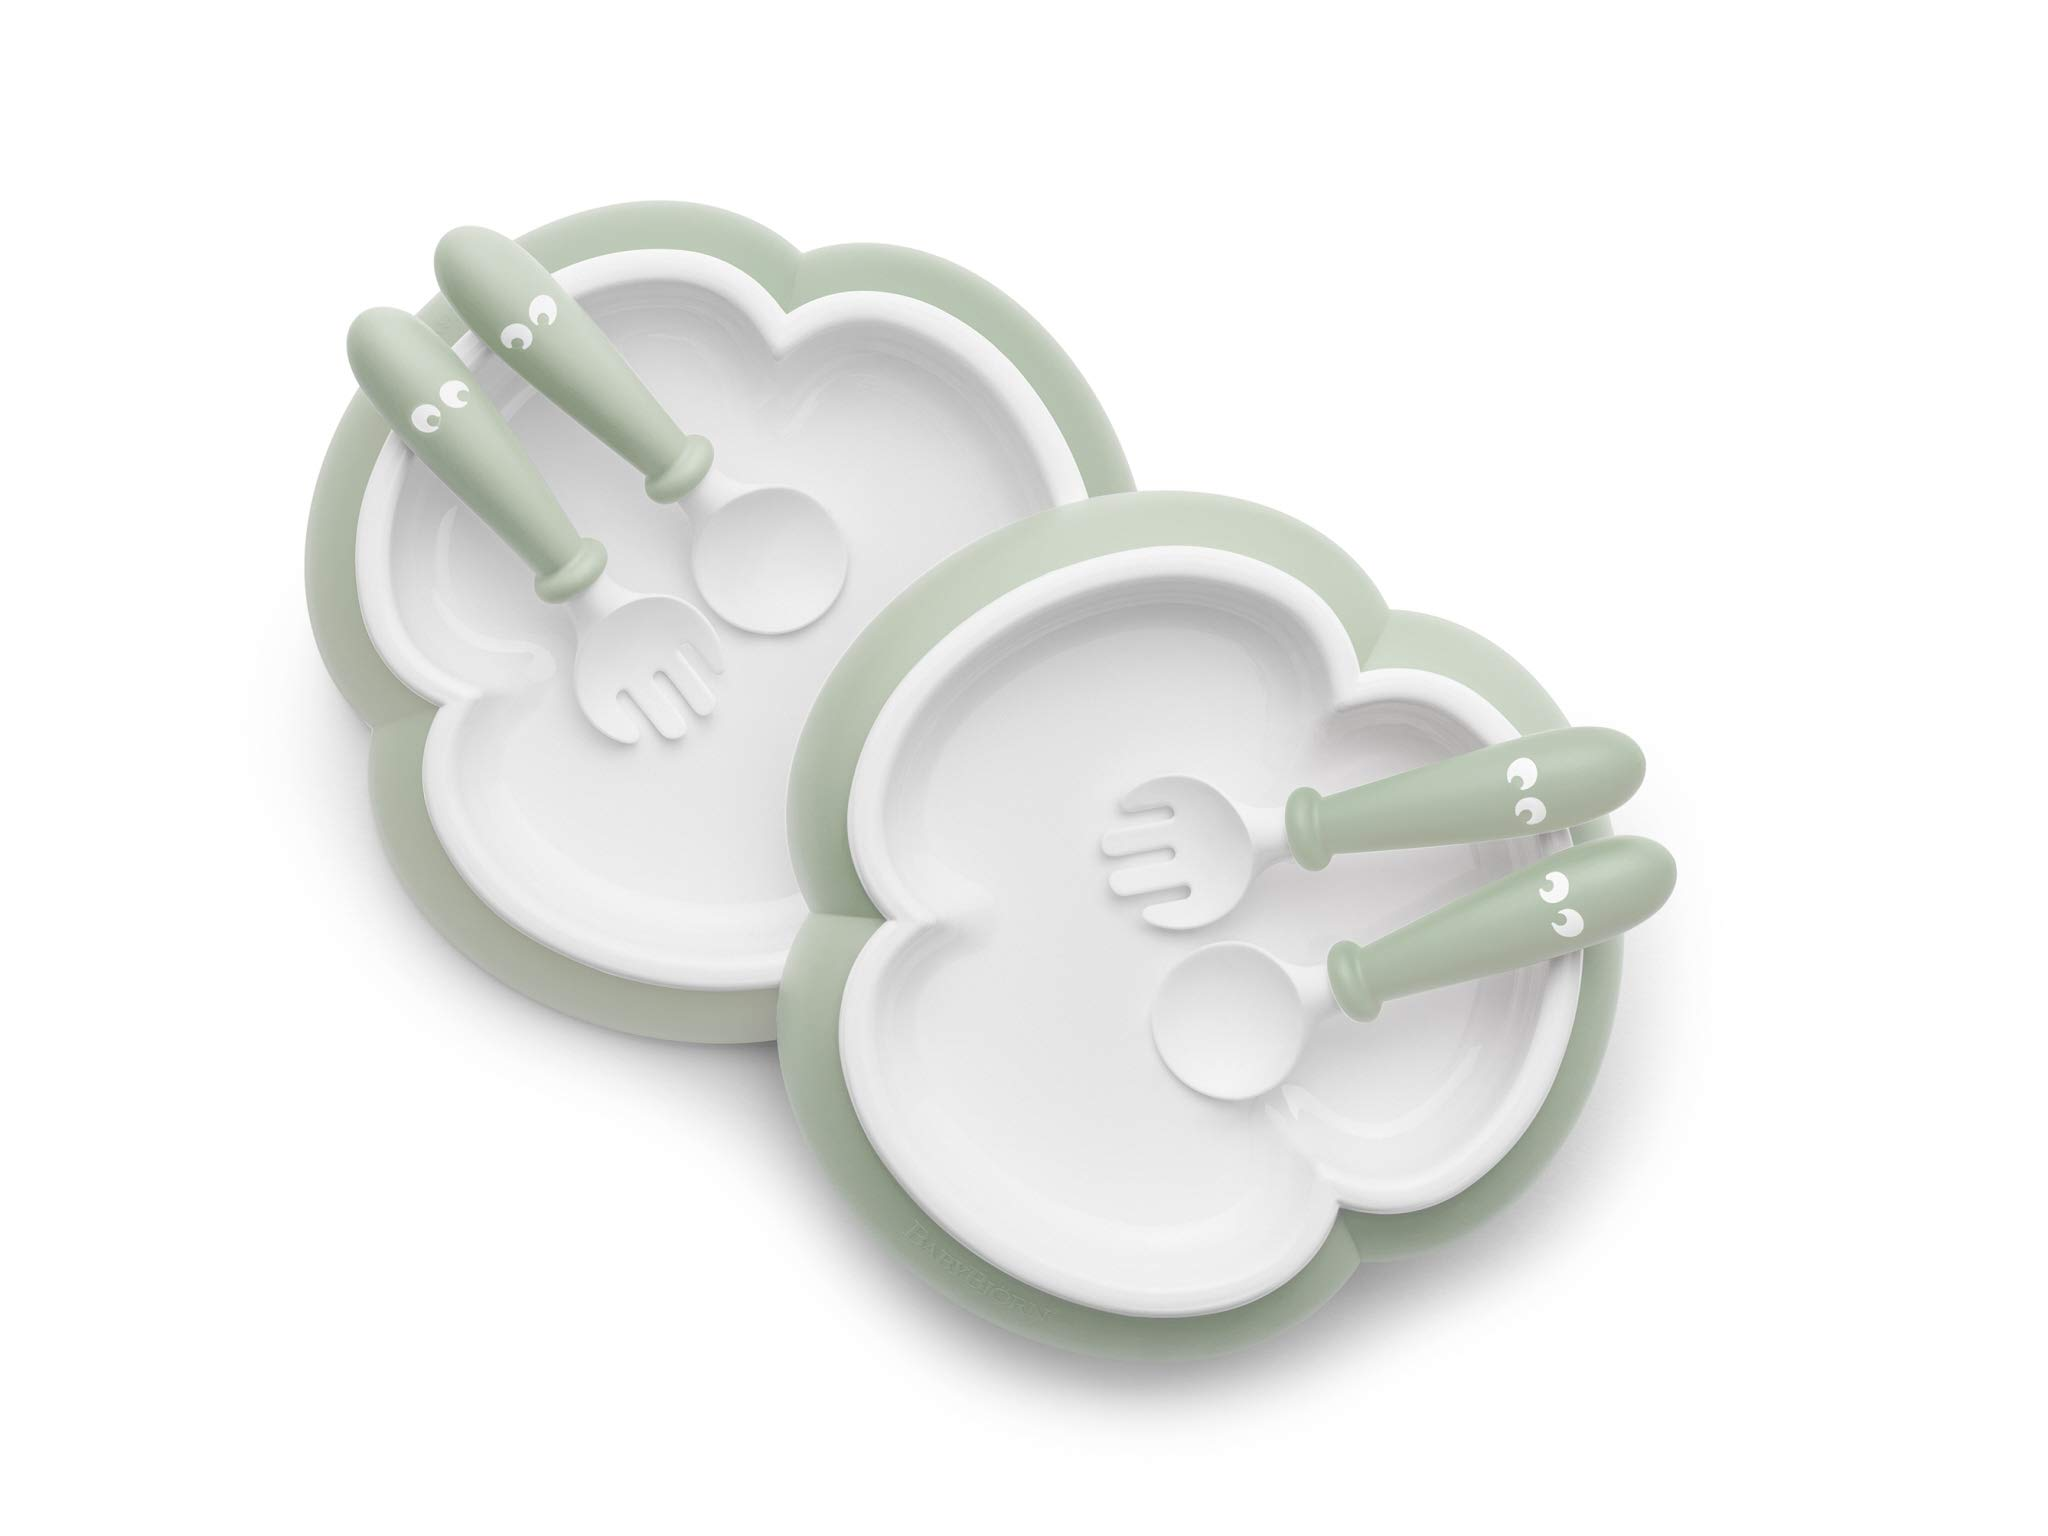 BABYBJORN Baby Plate, Spoon and Fork, 2 Sets, Powder Green